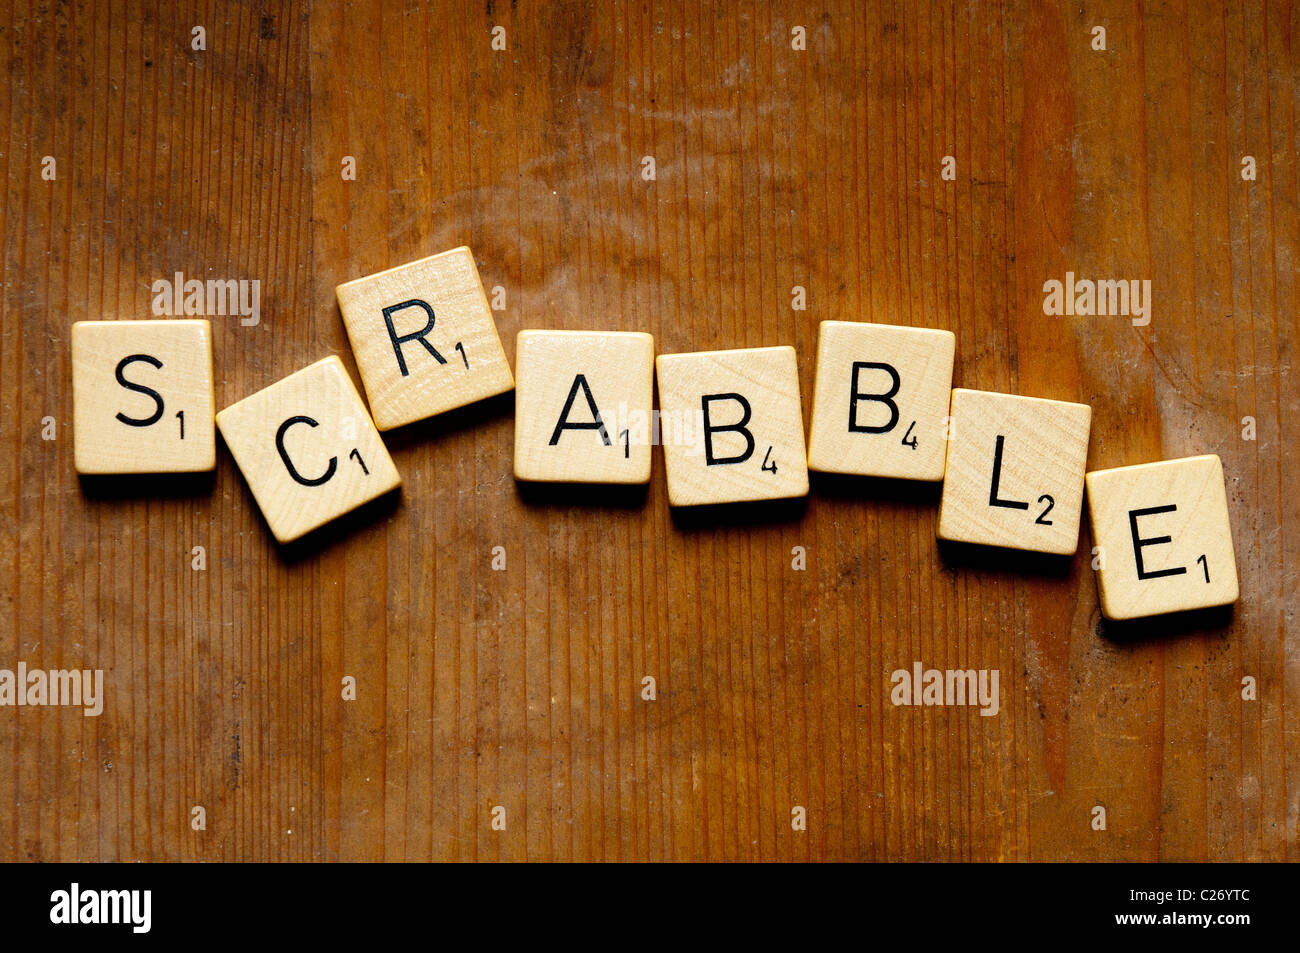 scrabble word made with tiles Stock Photo: 35803612 - Alamy